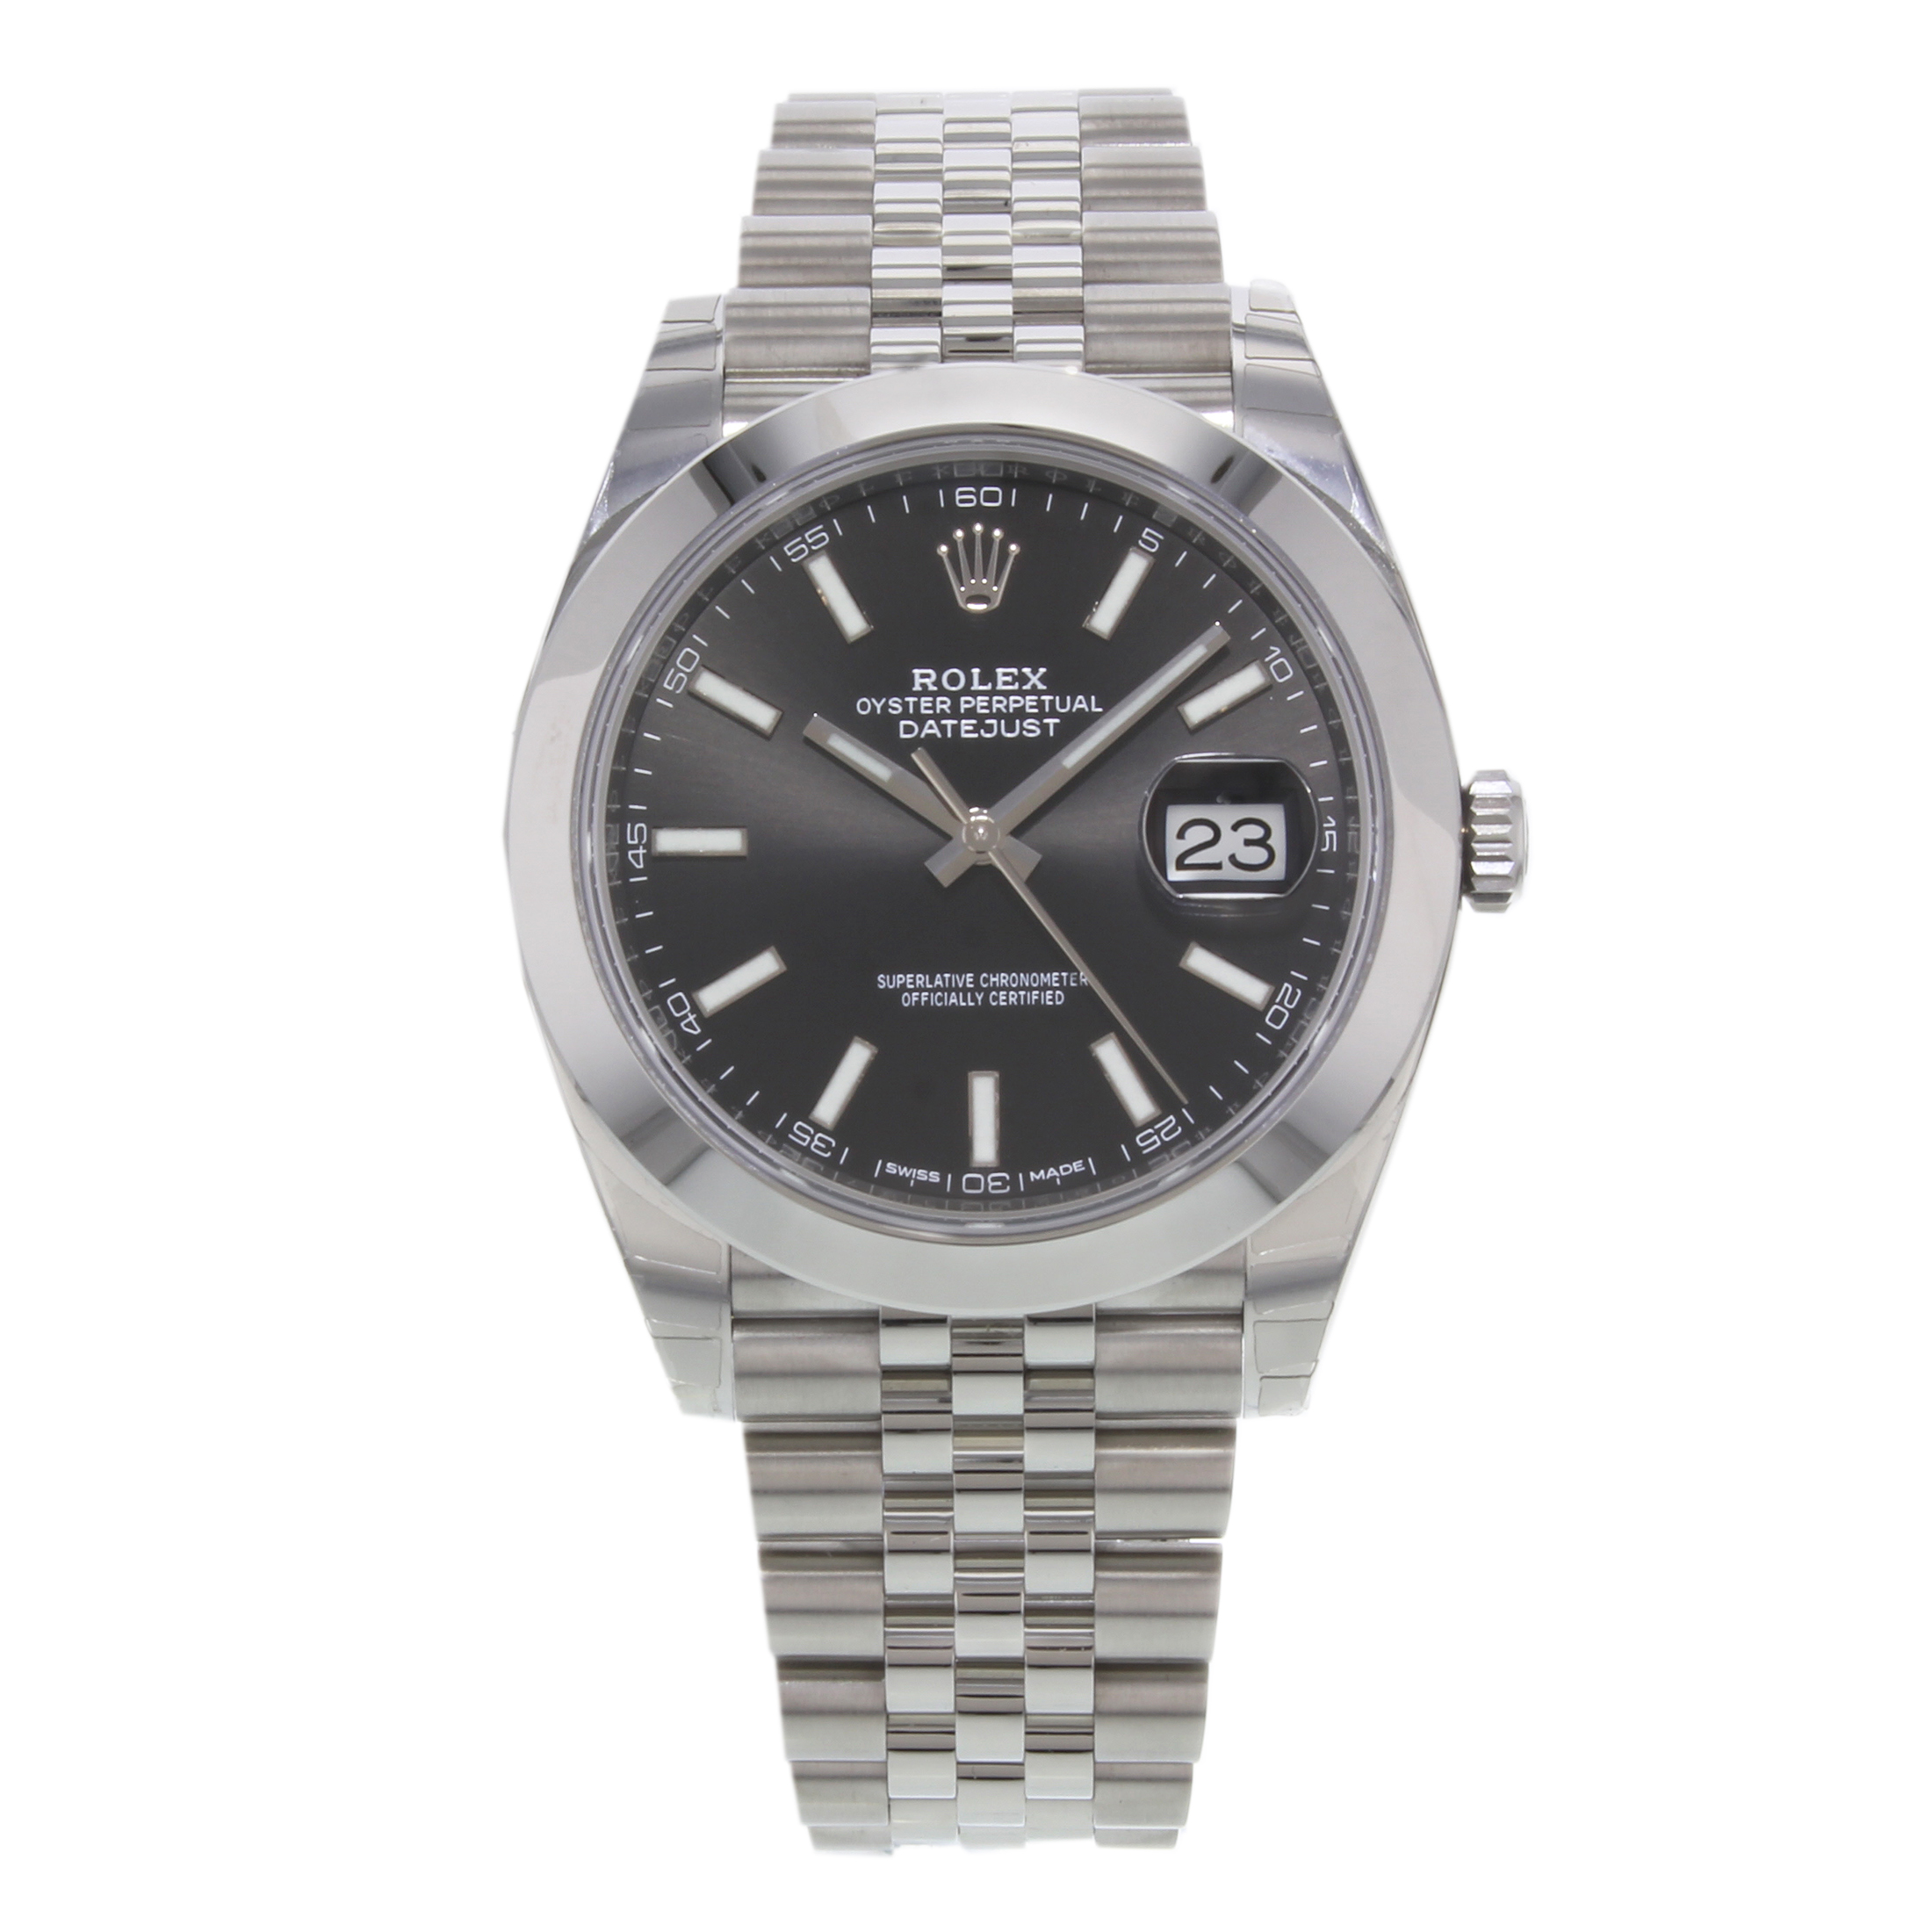 Rolex Datejust 41 126300 bkij Black Index Stainless Steel Automatic Mens Watch